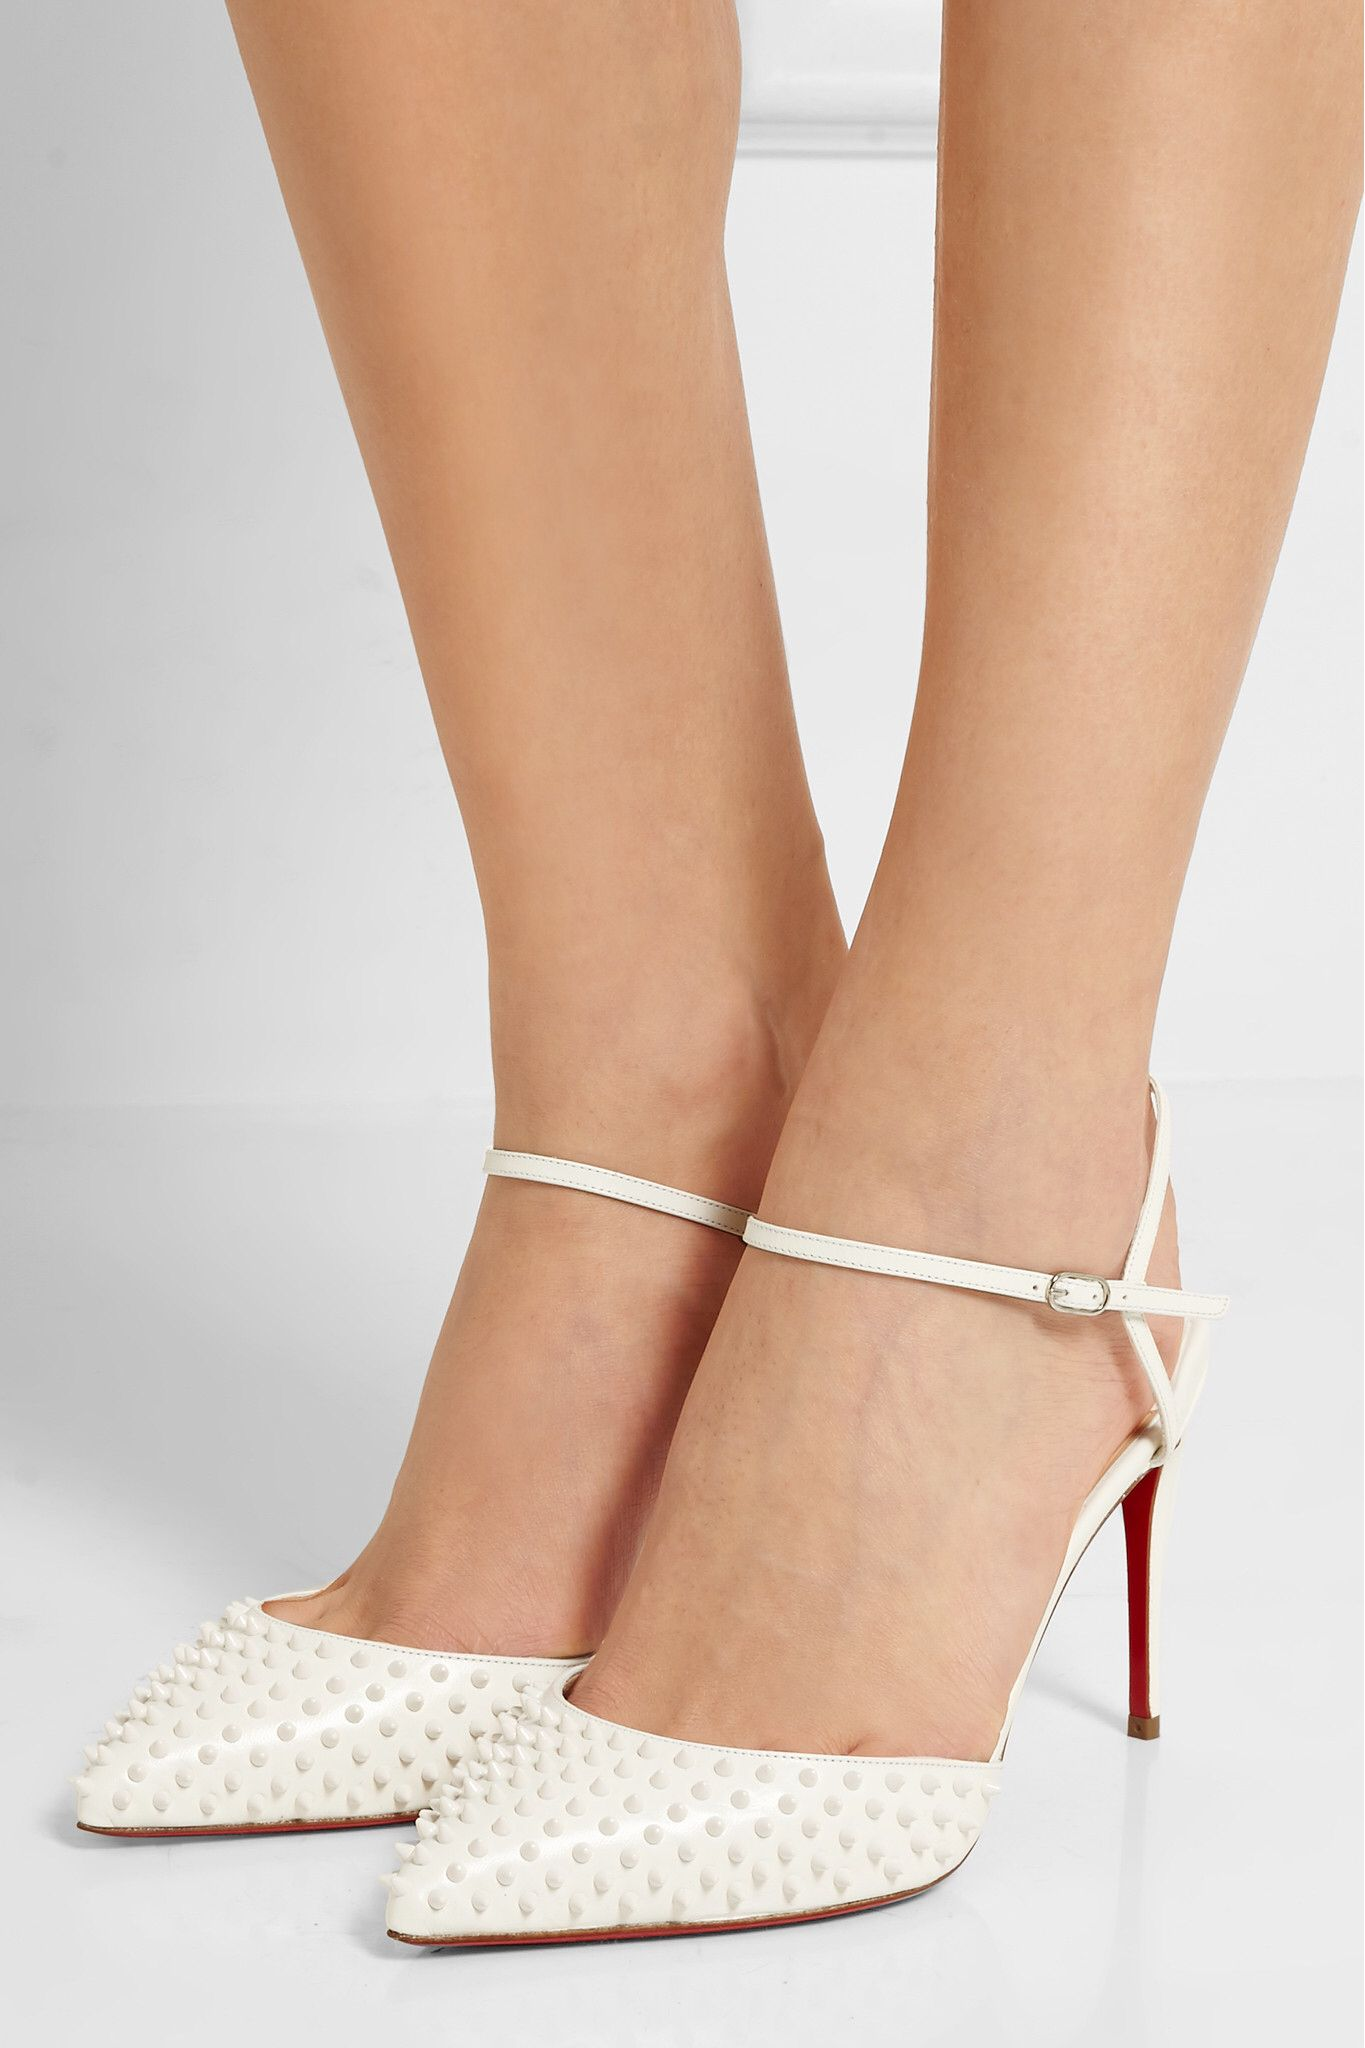 White Baila 85 spiked leather pumps